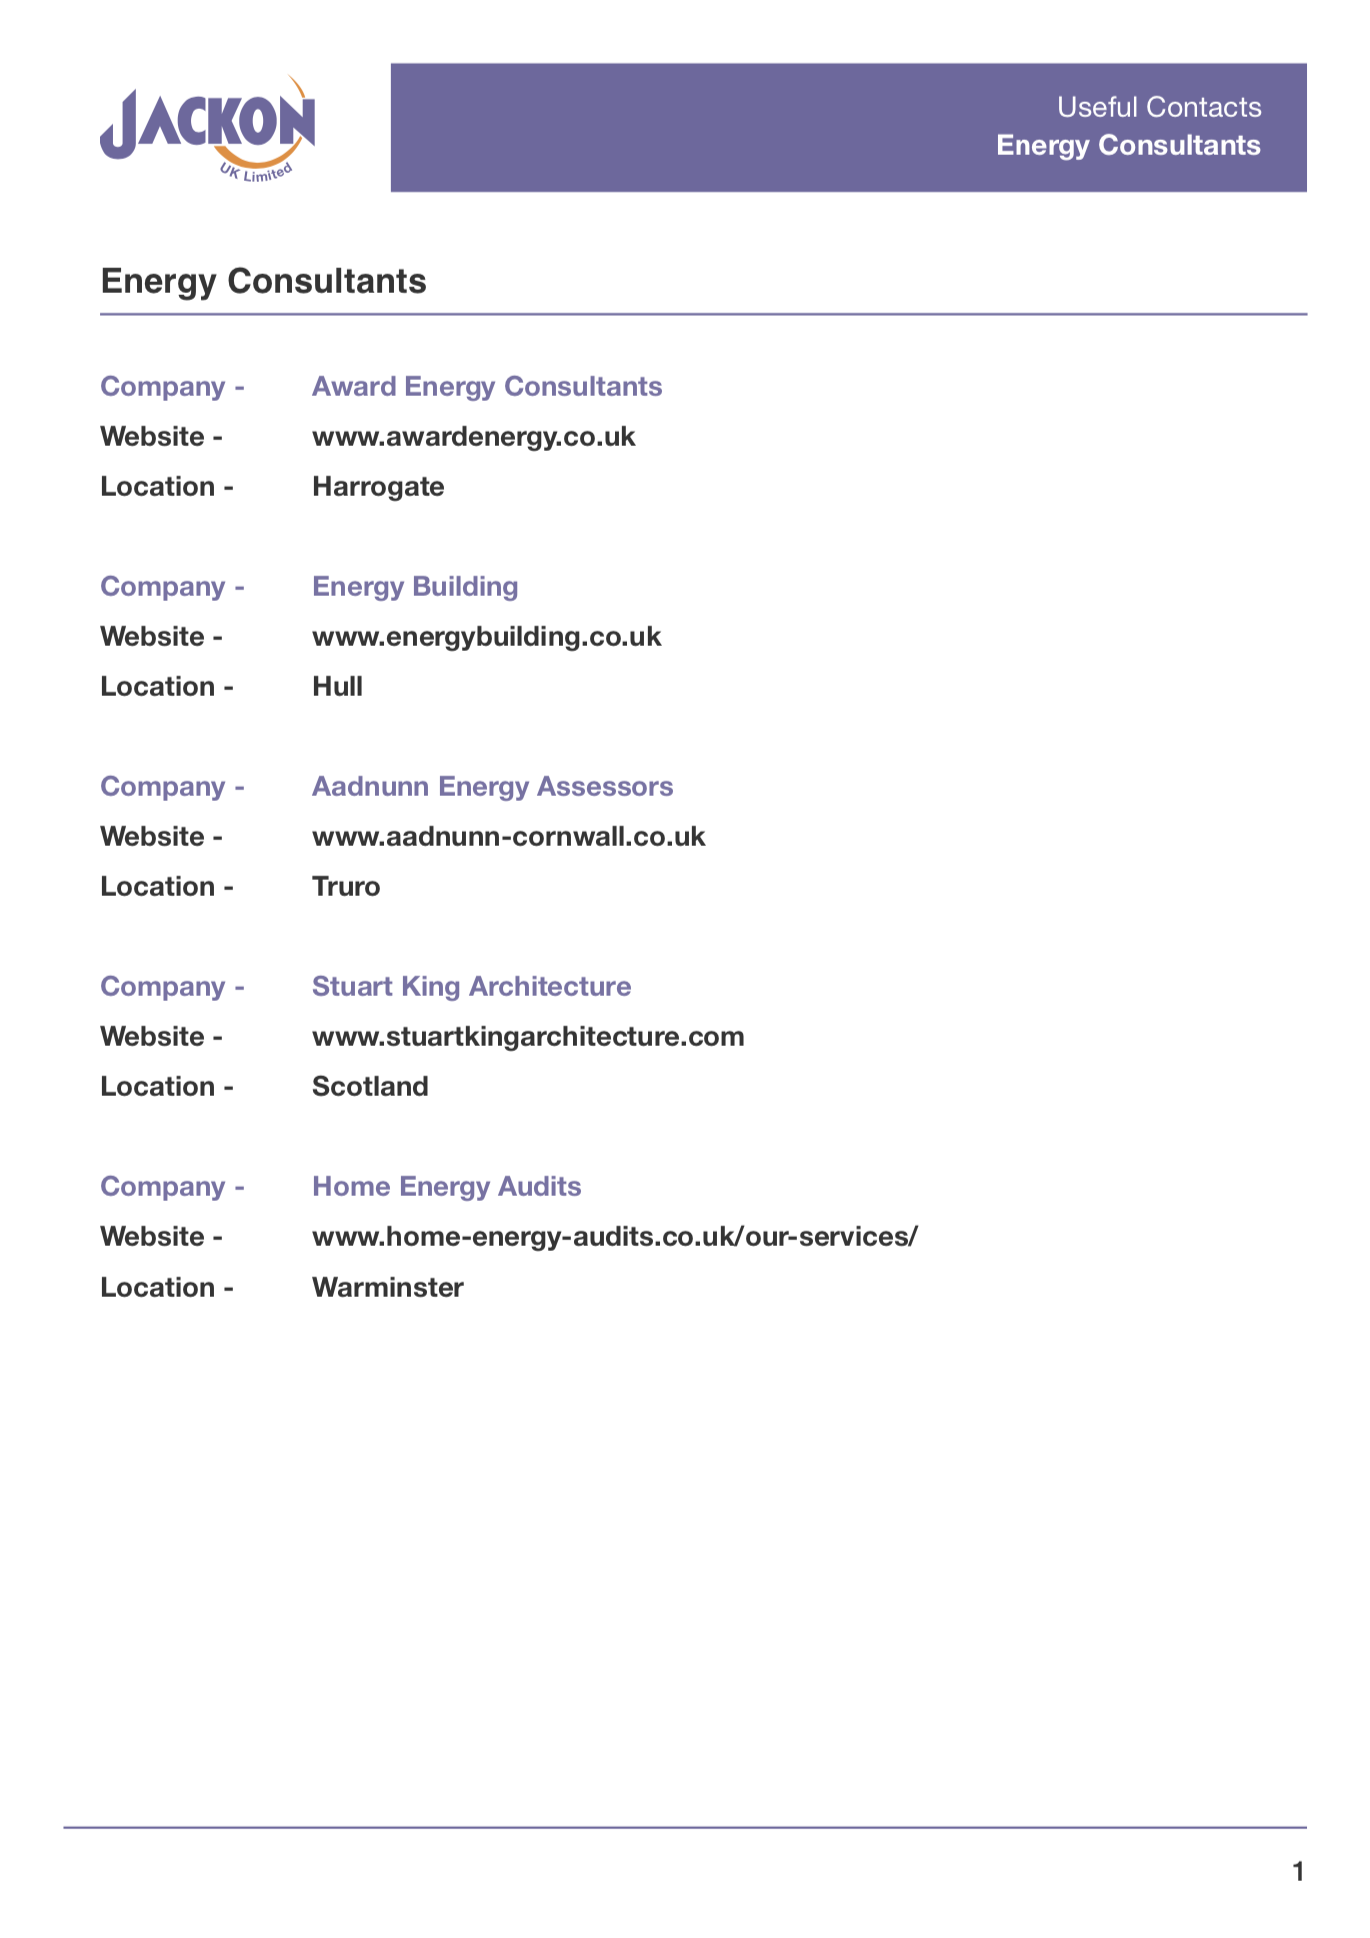 Useful Contacts – Energy Consultants